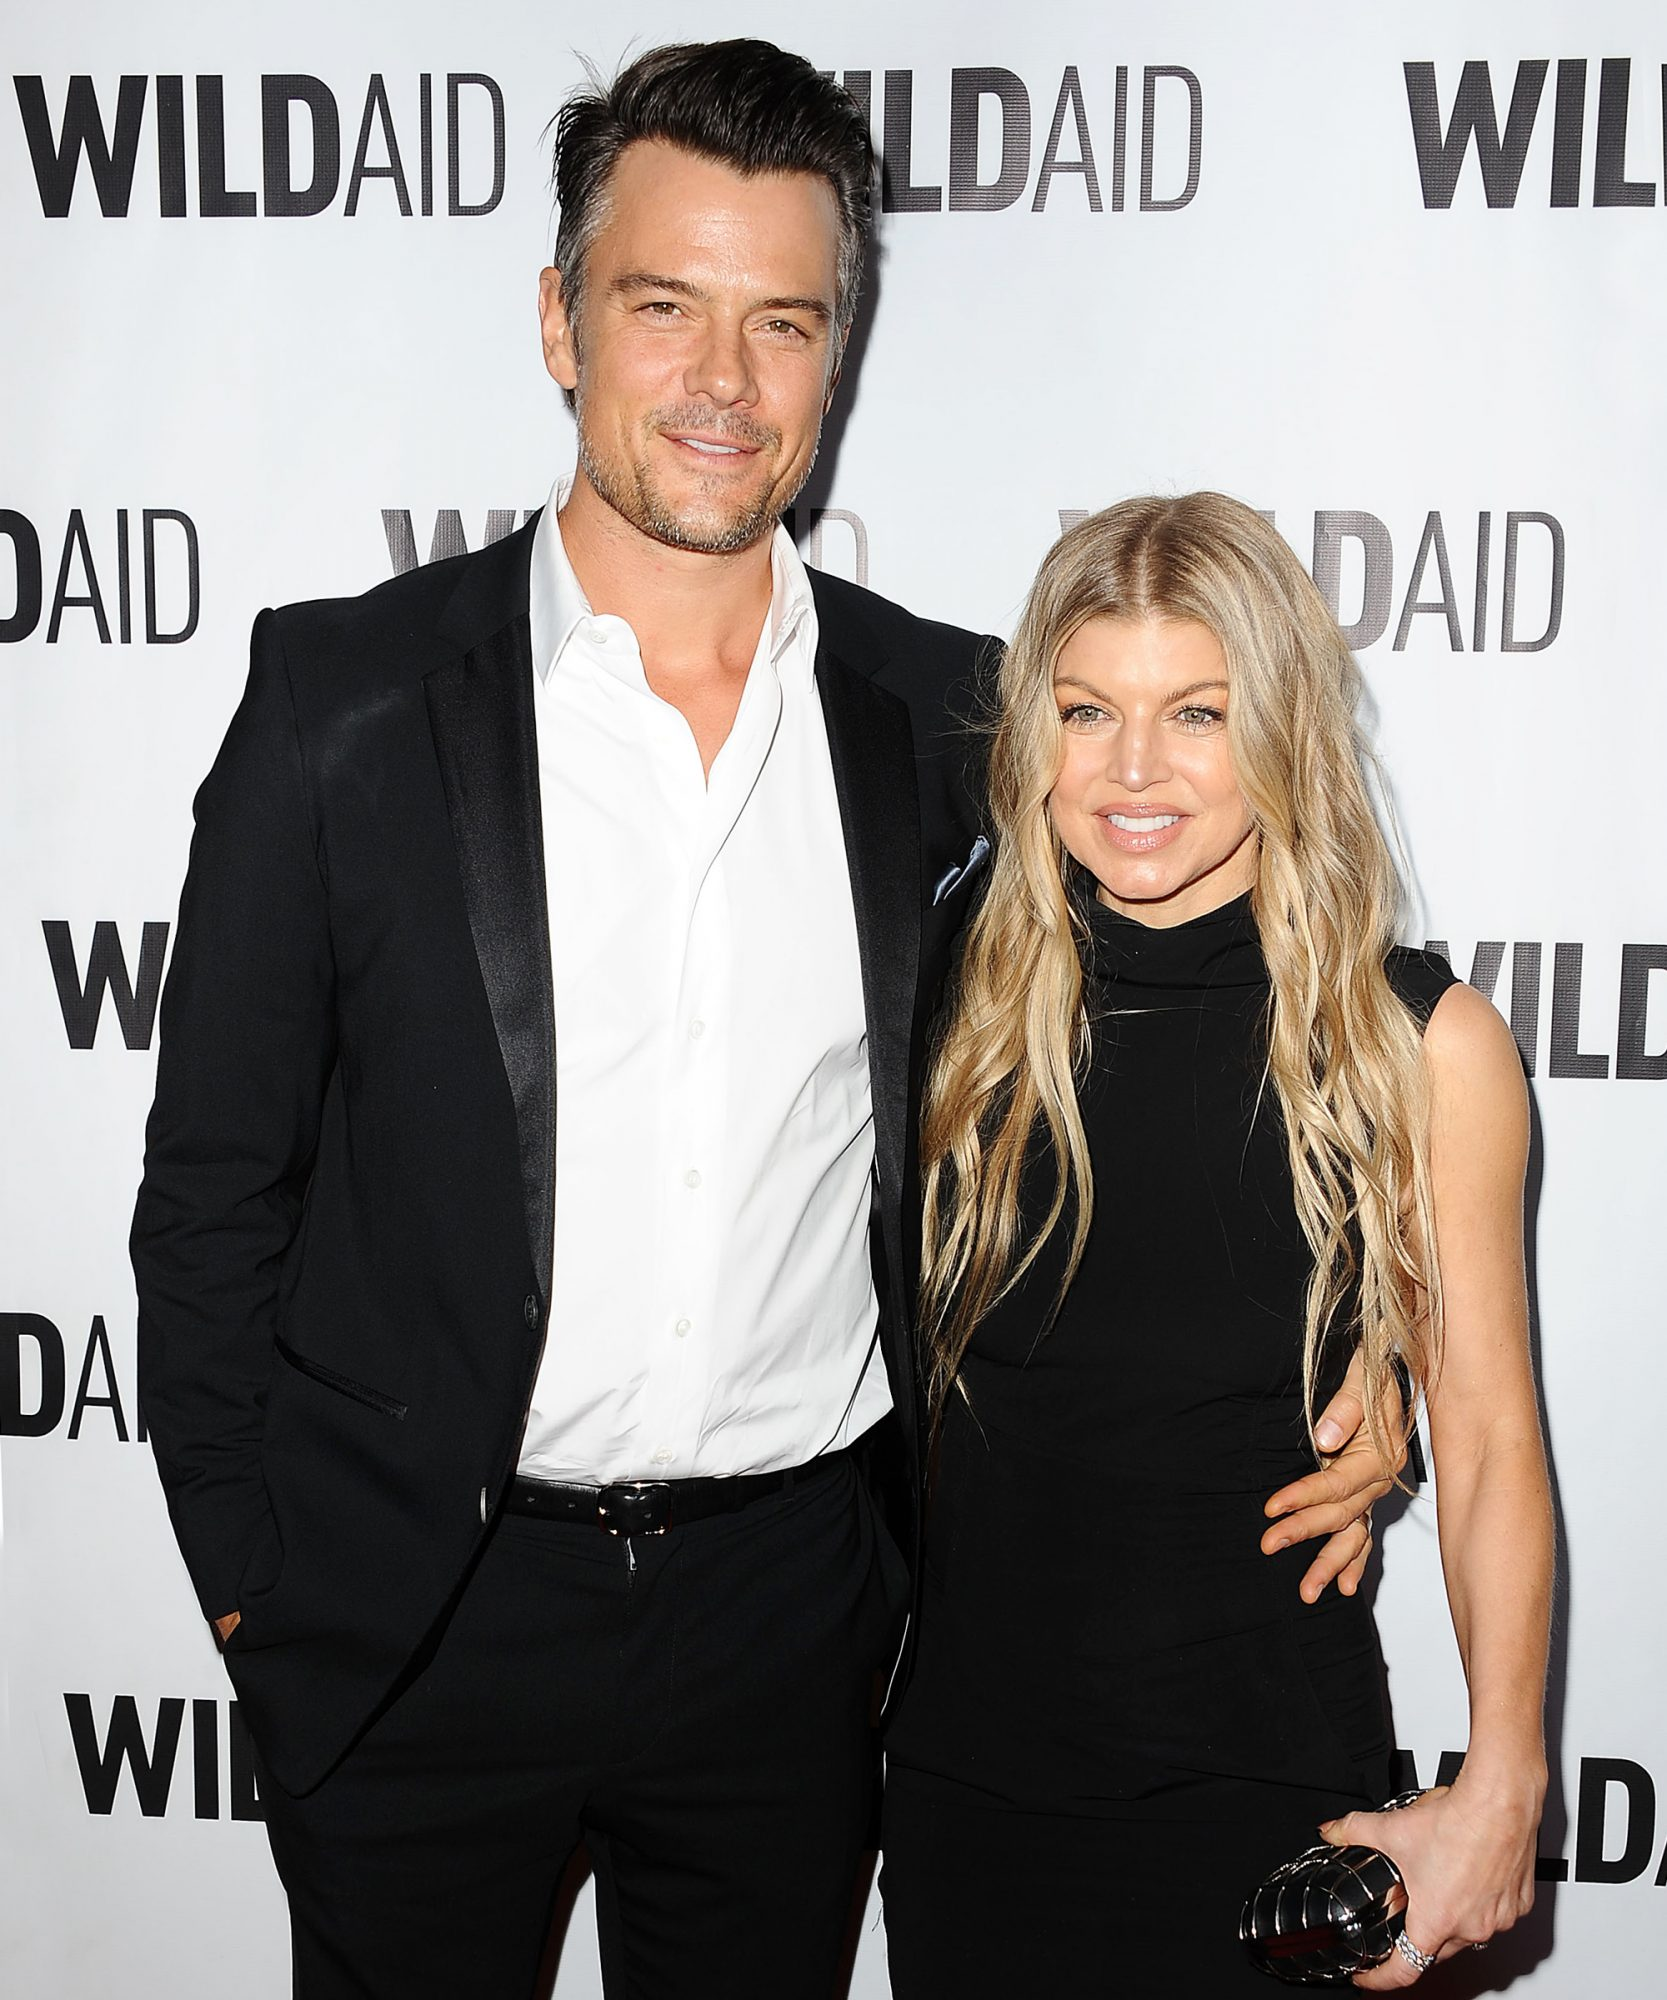 Fergie & Josh Duhamel Swear by This Power Smoothie for All-Day Energy